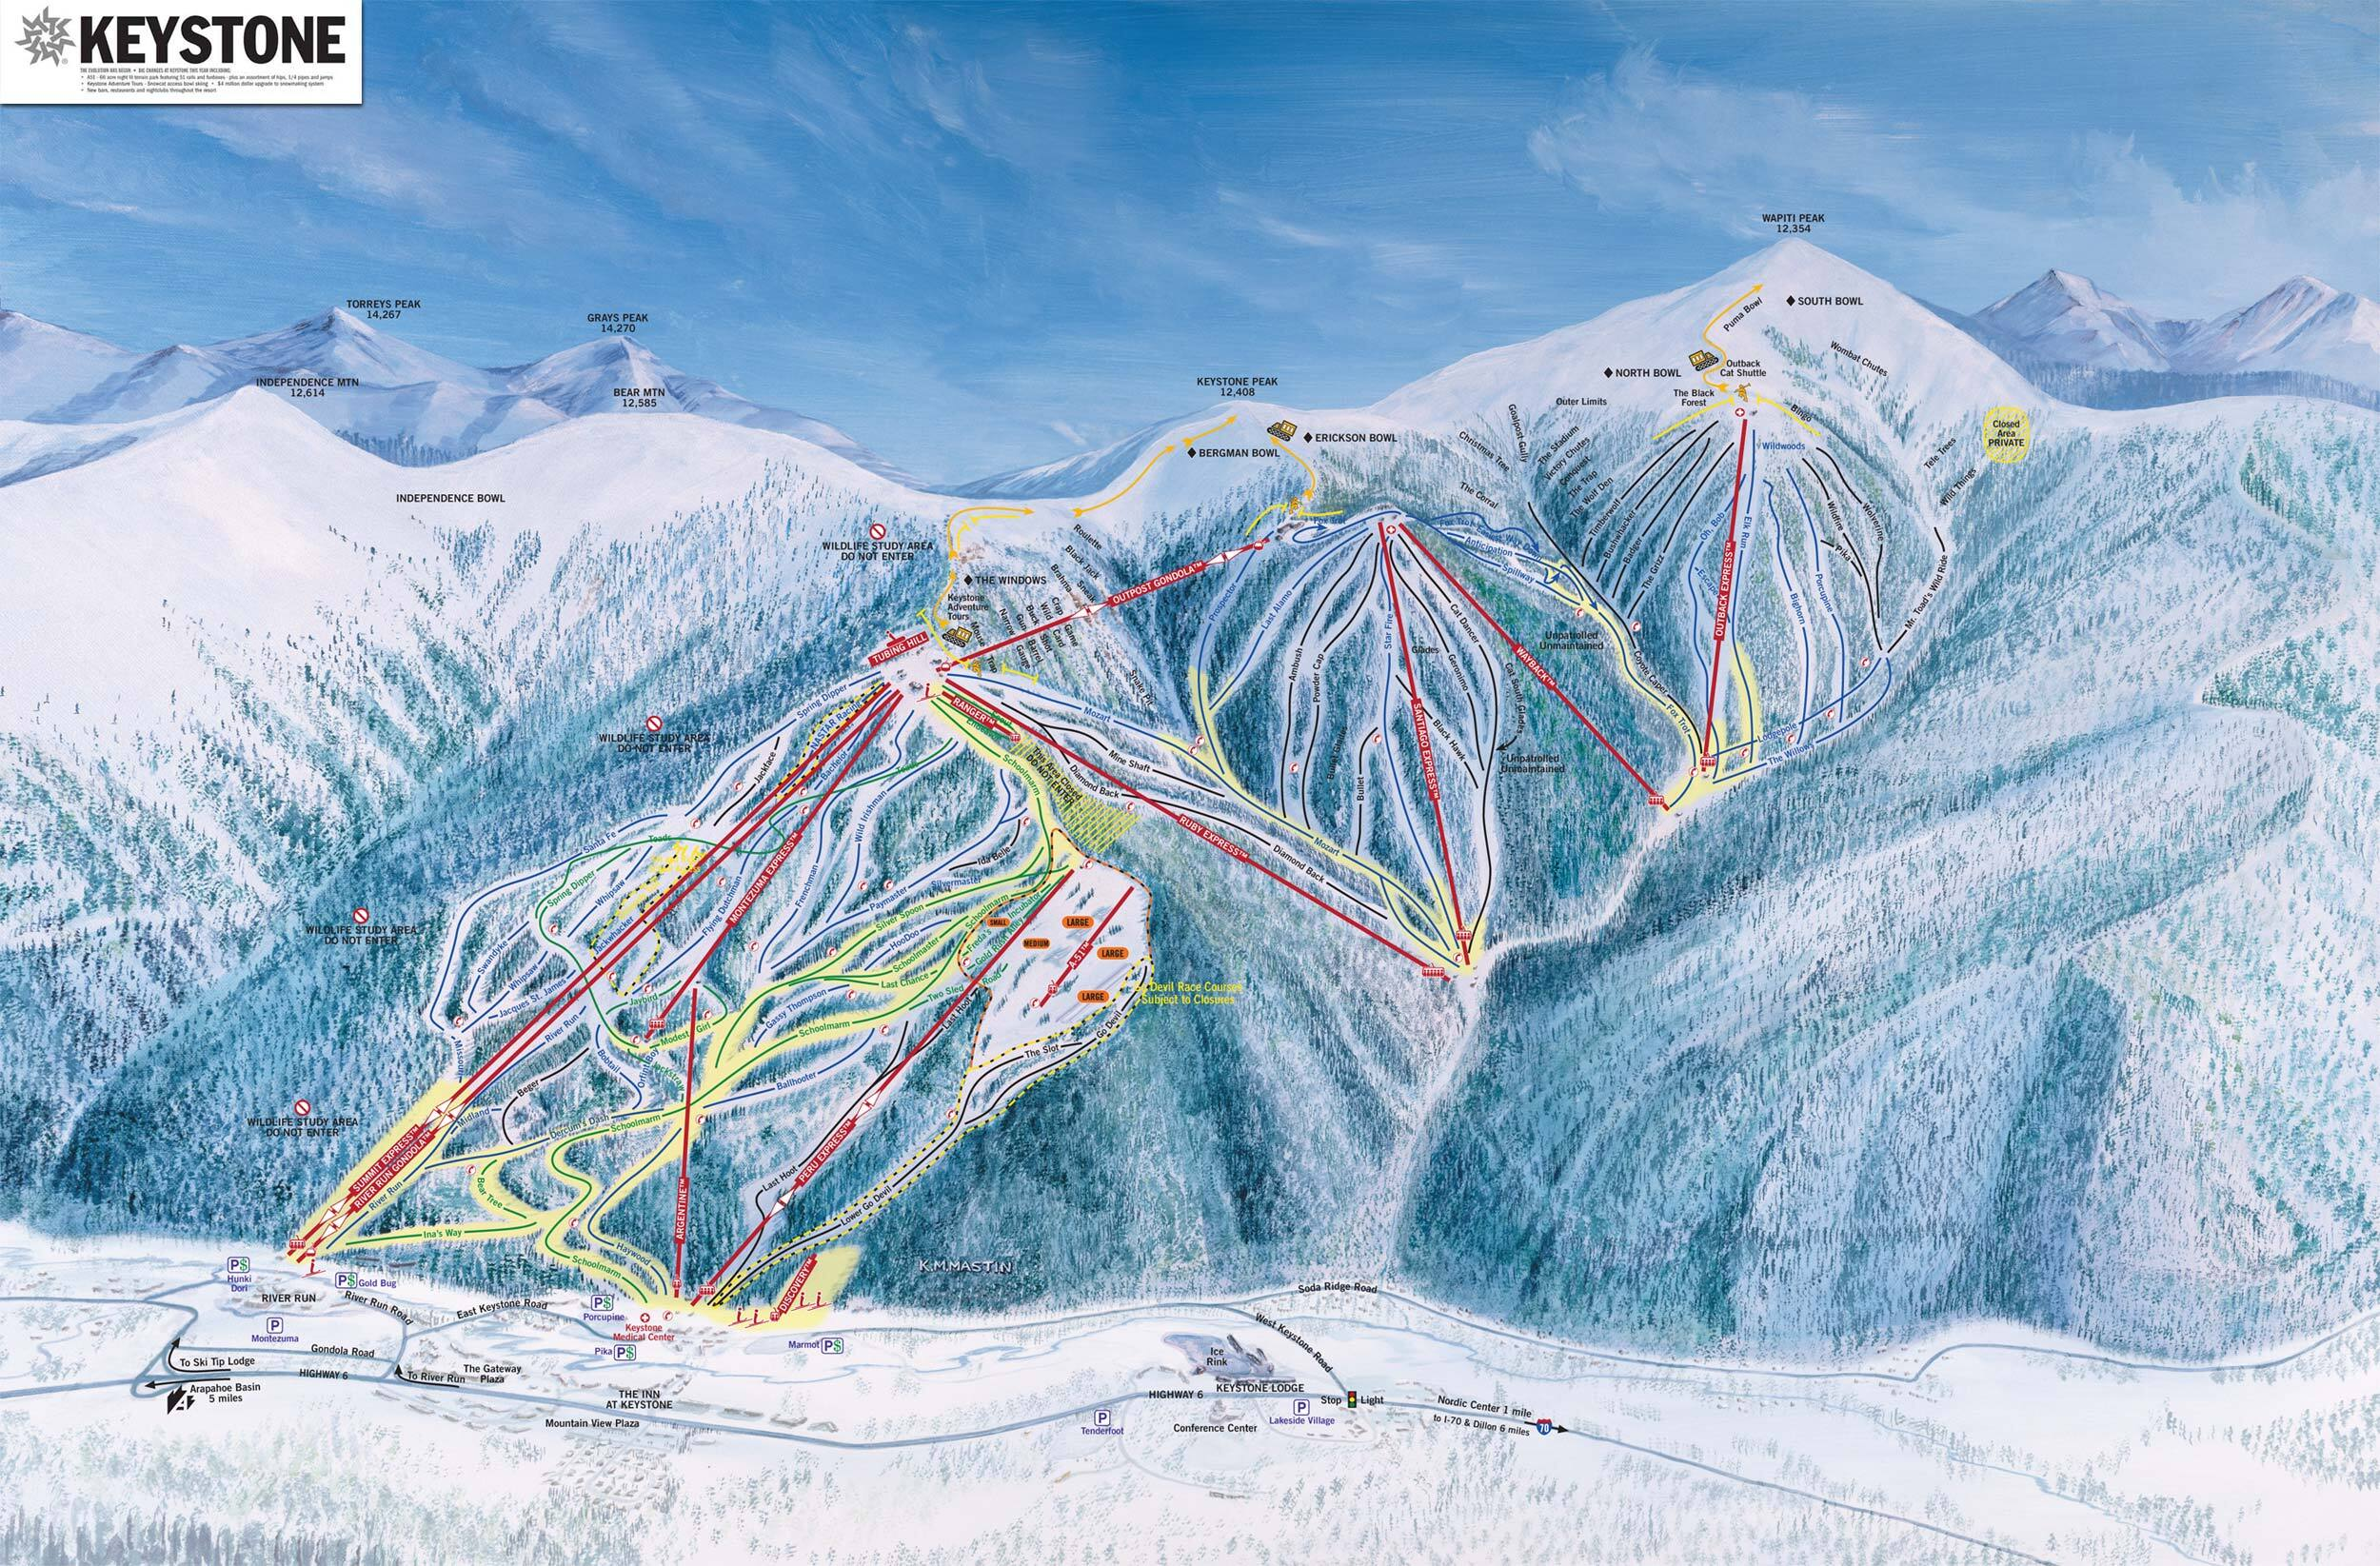 Skiing Colorado Map.Keystone Ski Resort Guide Location Map Keystone Ski Holiday